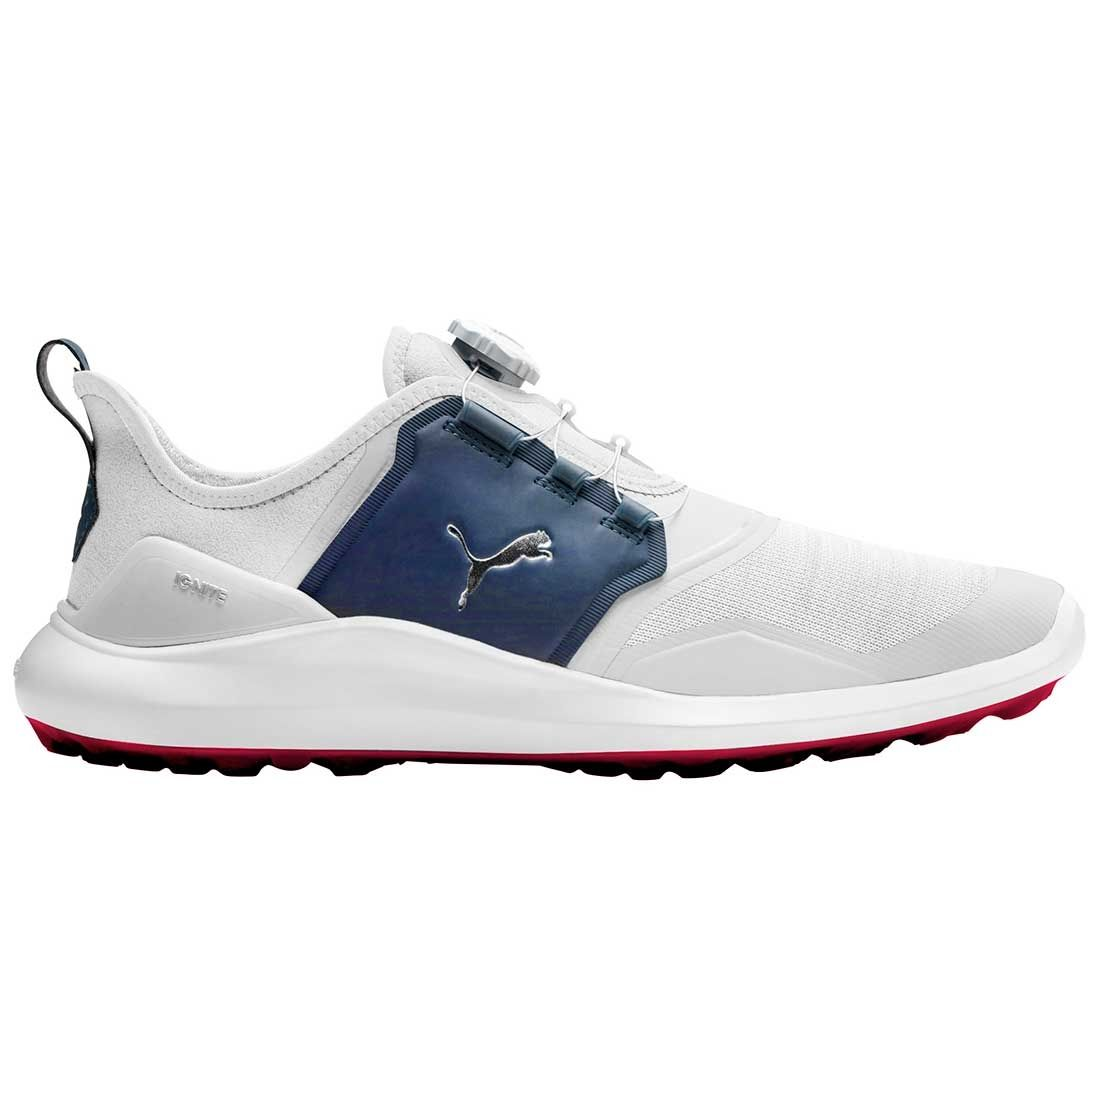 Buy Puma Ignite Nxt Disc Golf Shoes White Silver Peacoat Golf Discount